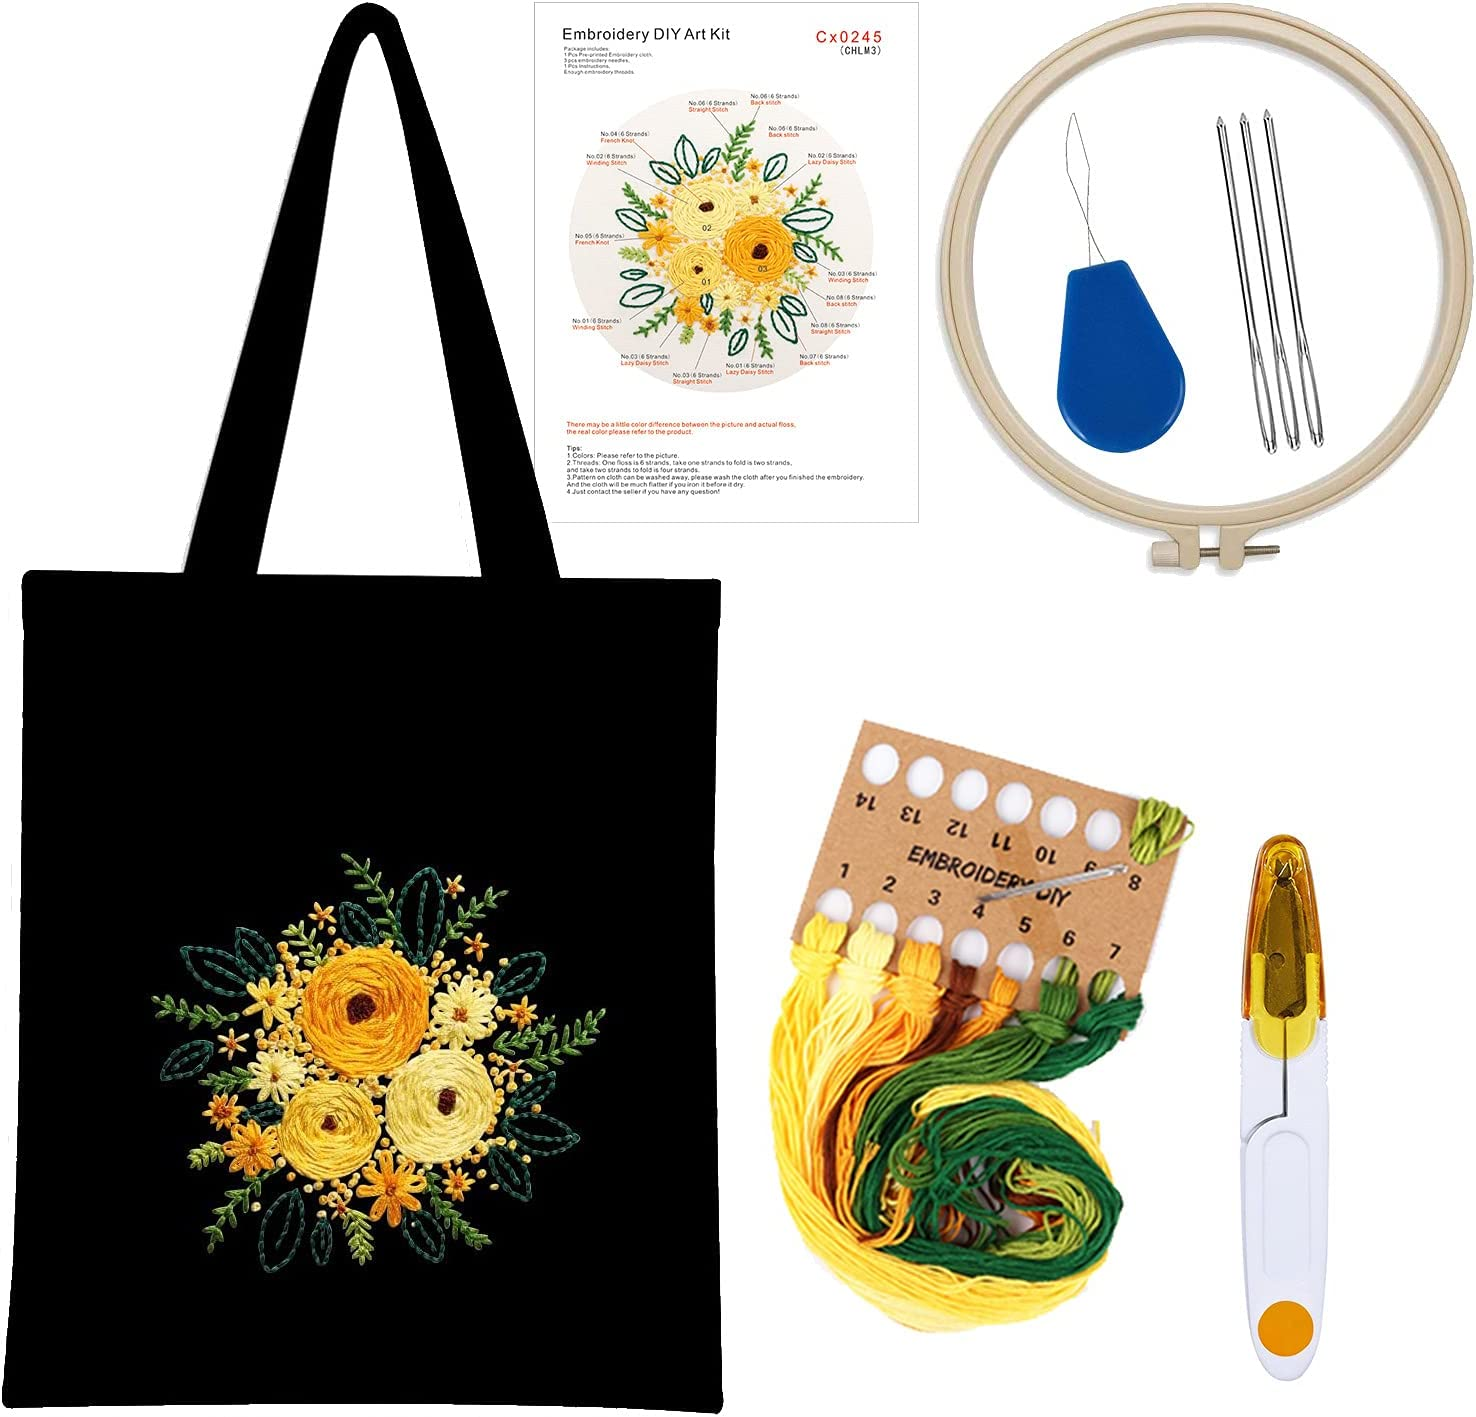 Flymind Bombing free Washington Mall shipping Embroidery Kit for Beginners Tote with Canvas Pattern Ba